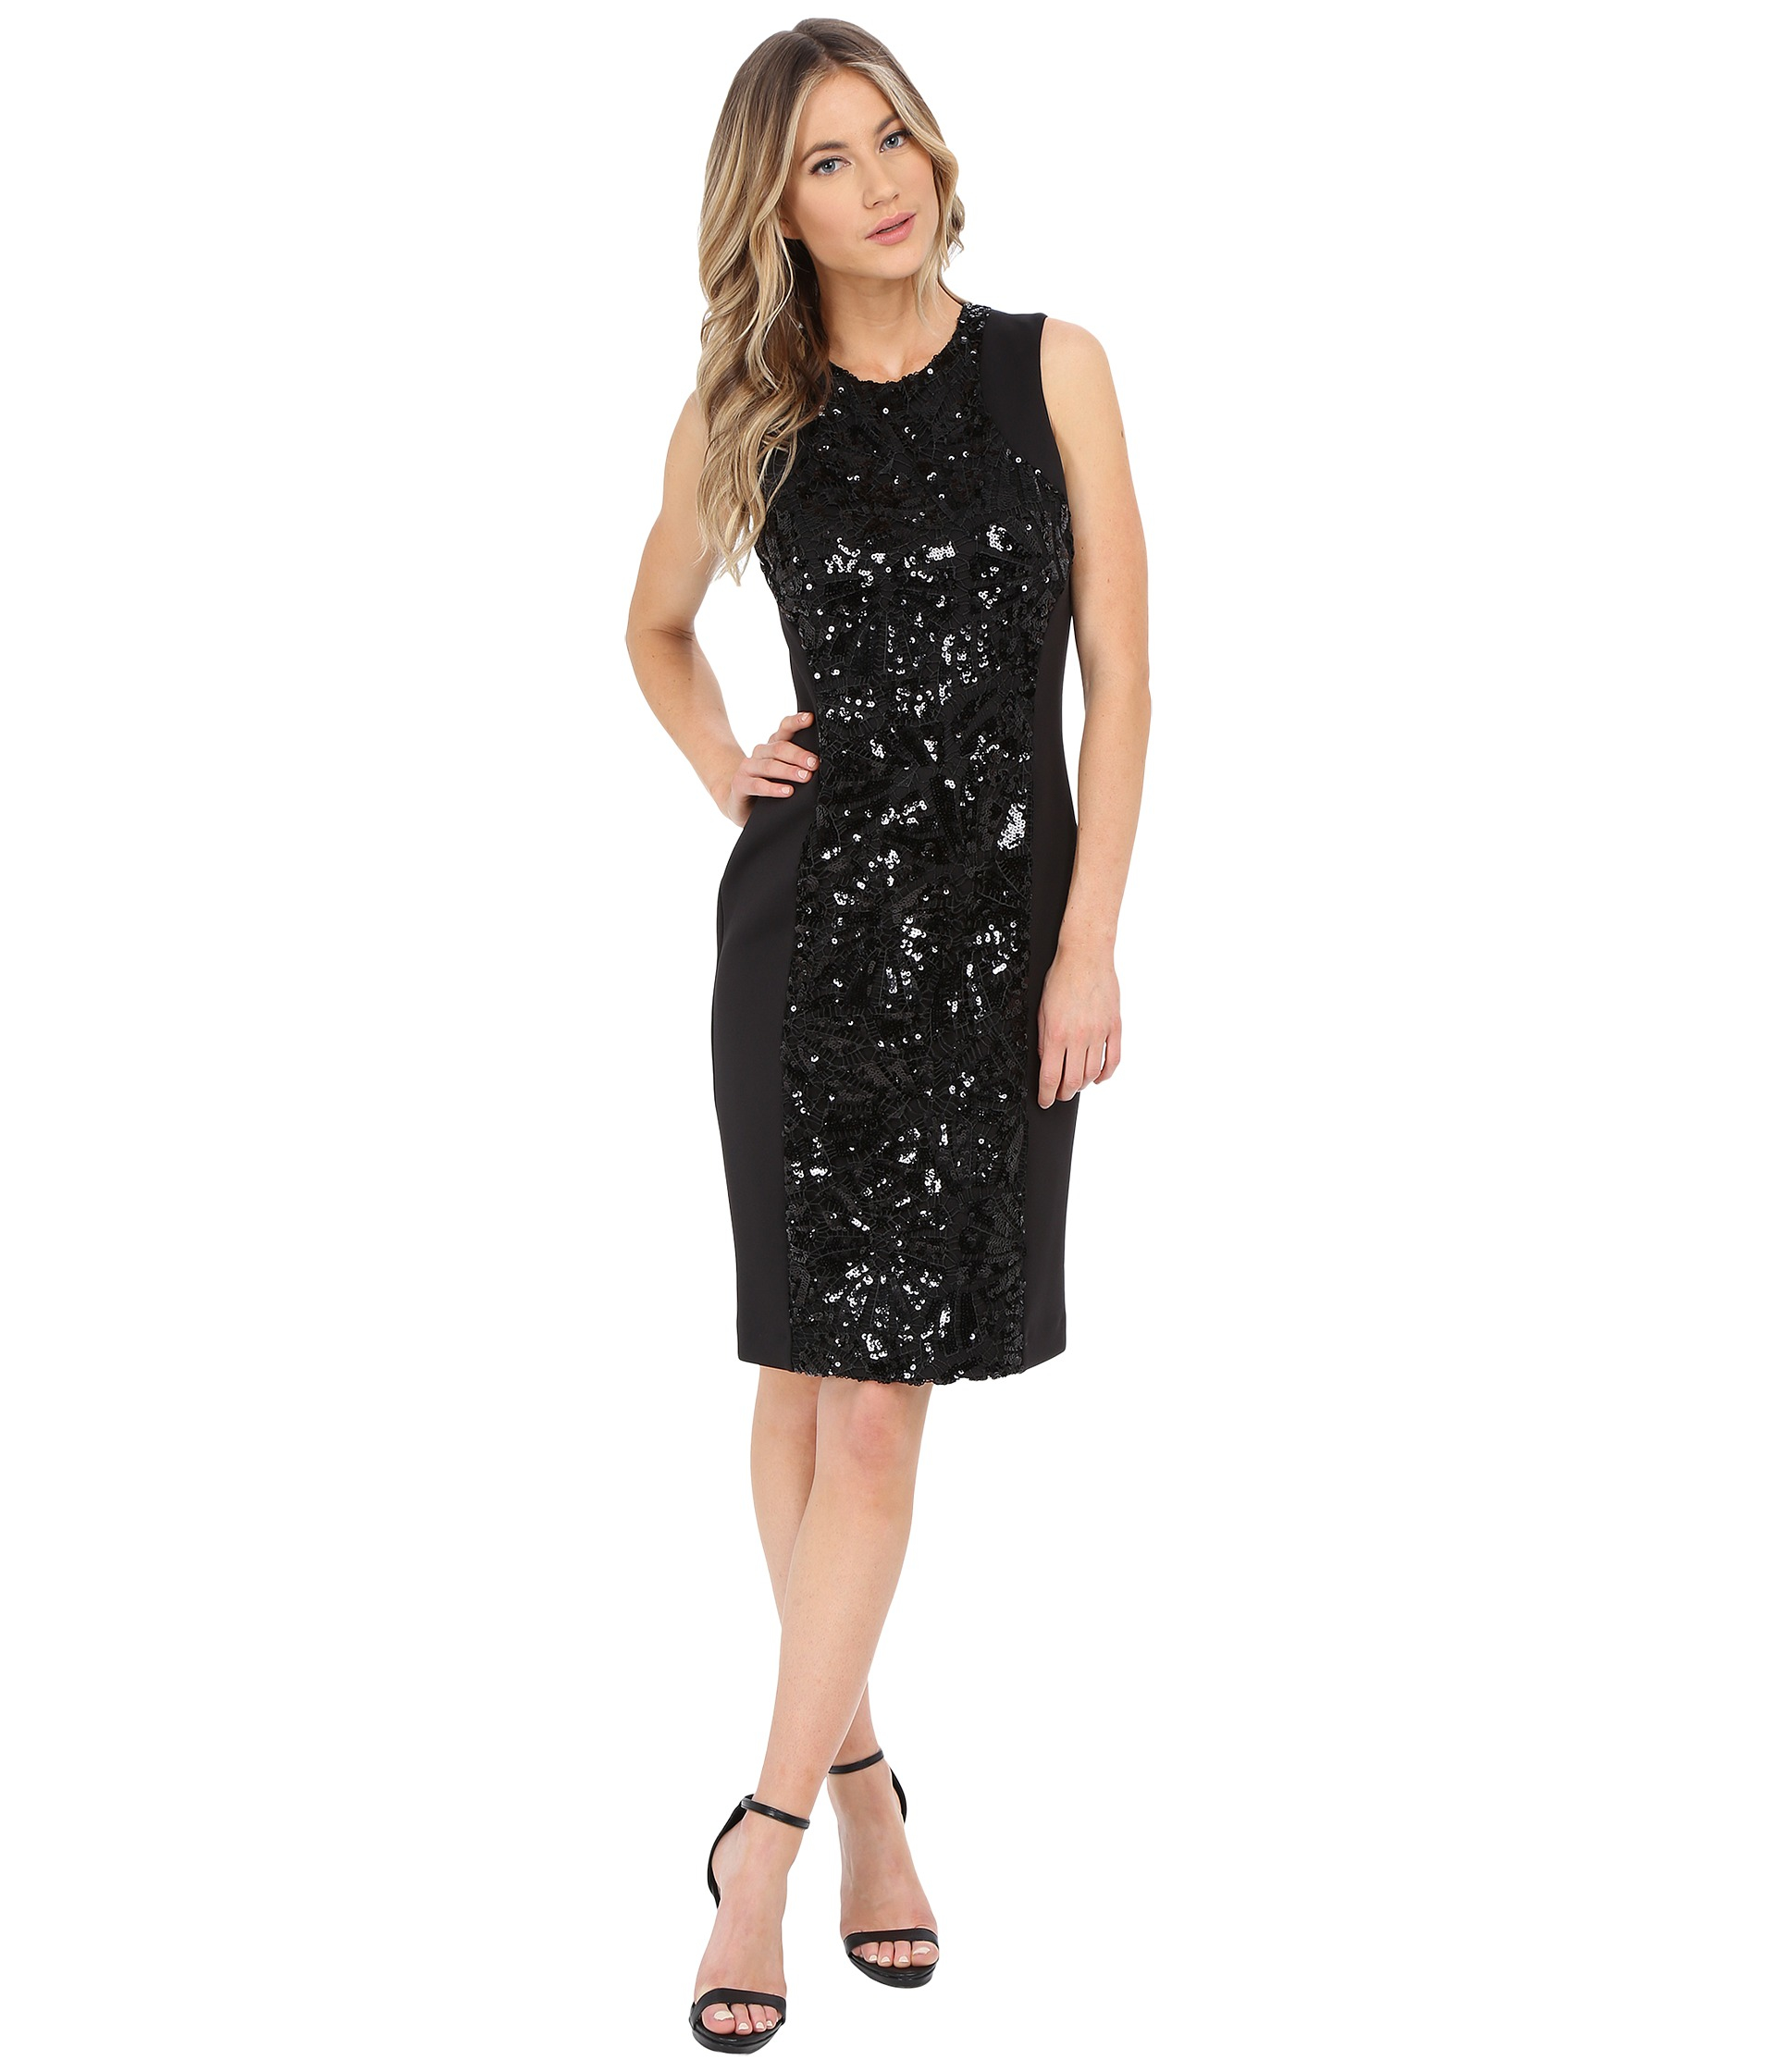 c95b3ba902ef7 Calvin Klein Sheath With Sequin Center Panel Dress in Black - Lyst